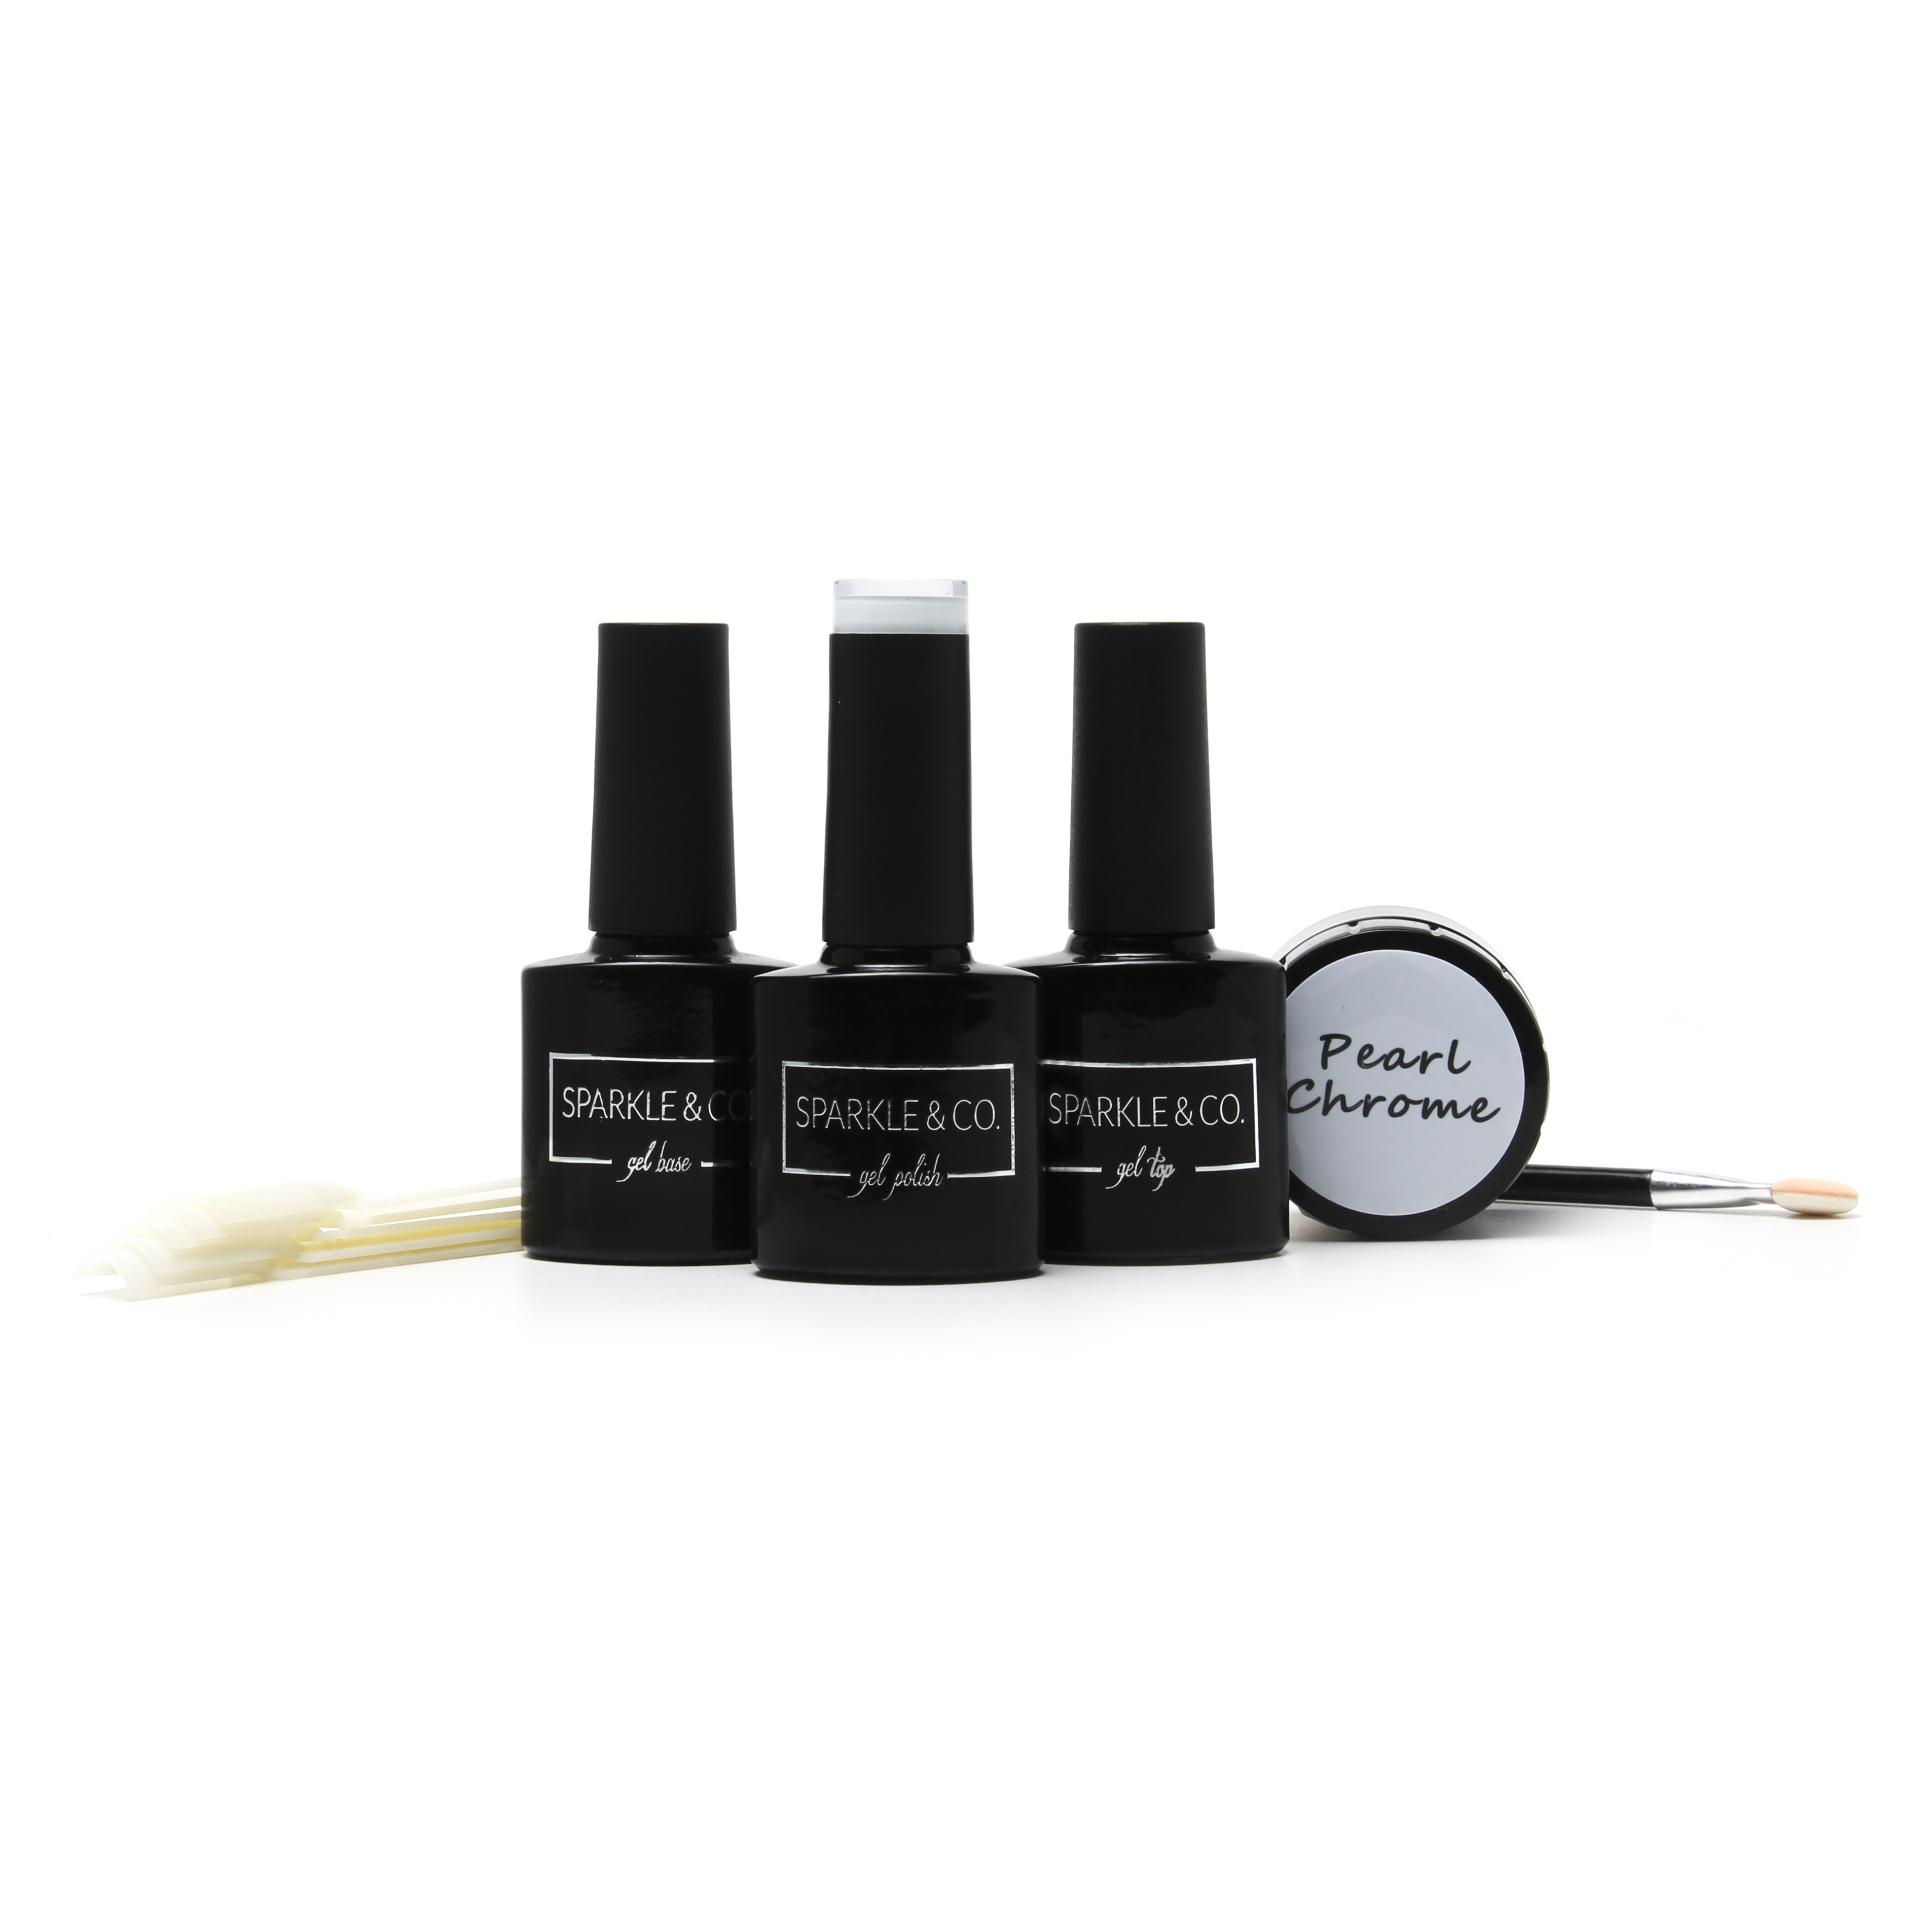 Deluxe GEL Pearl Chrome Pure Powder Kit by Sparkle & Co.